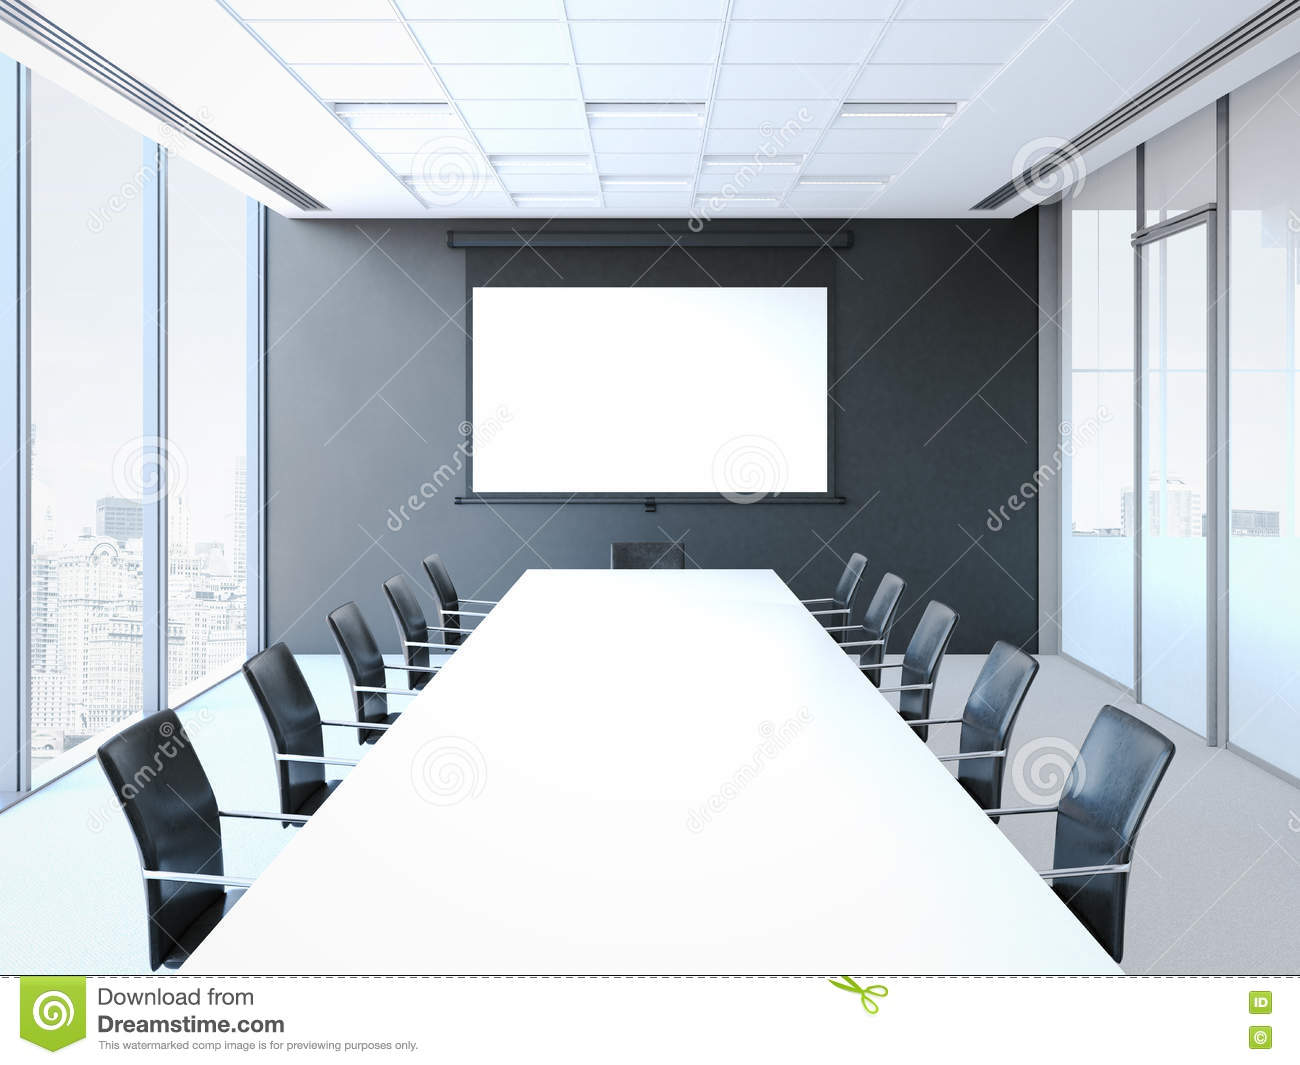 office chairs unlimited vinyl strap chair repair kit conference room with white table and black chairs. 3d rendering stock illustration - image: 73286340